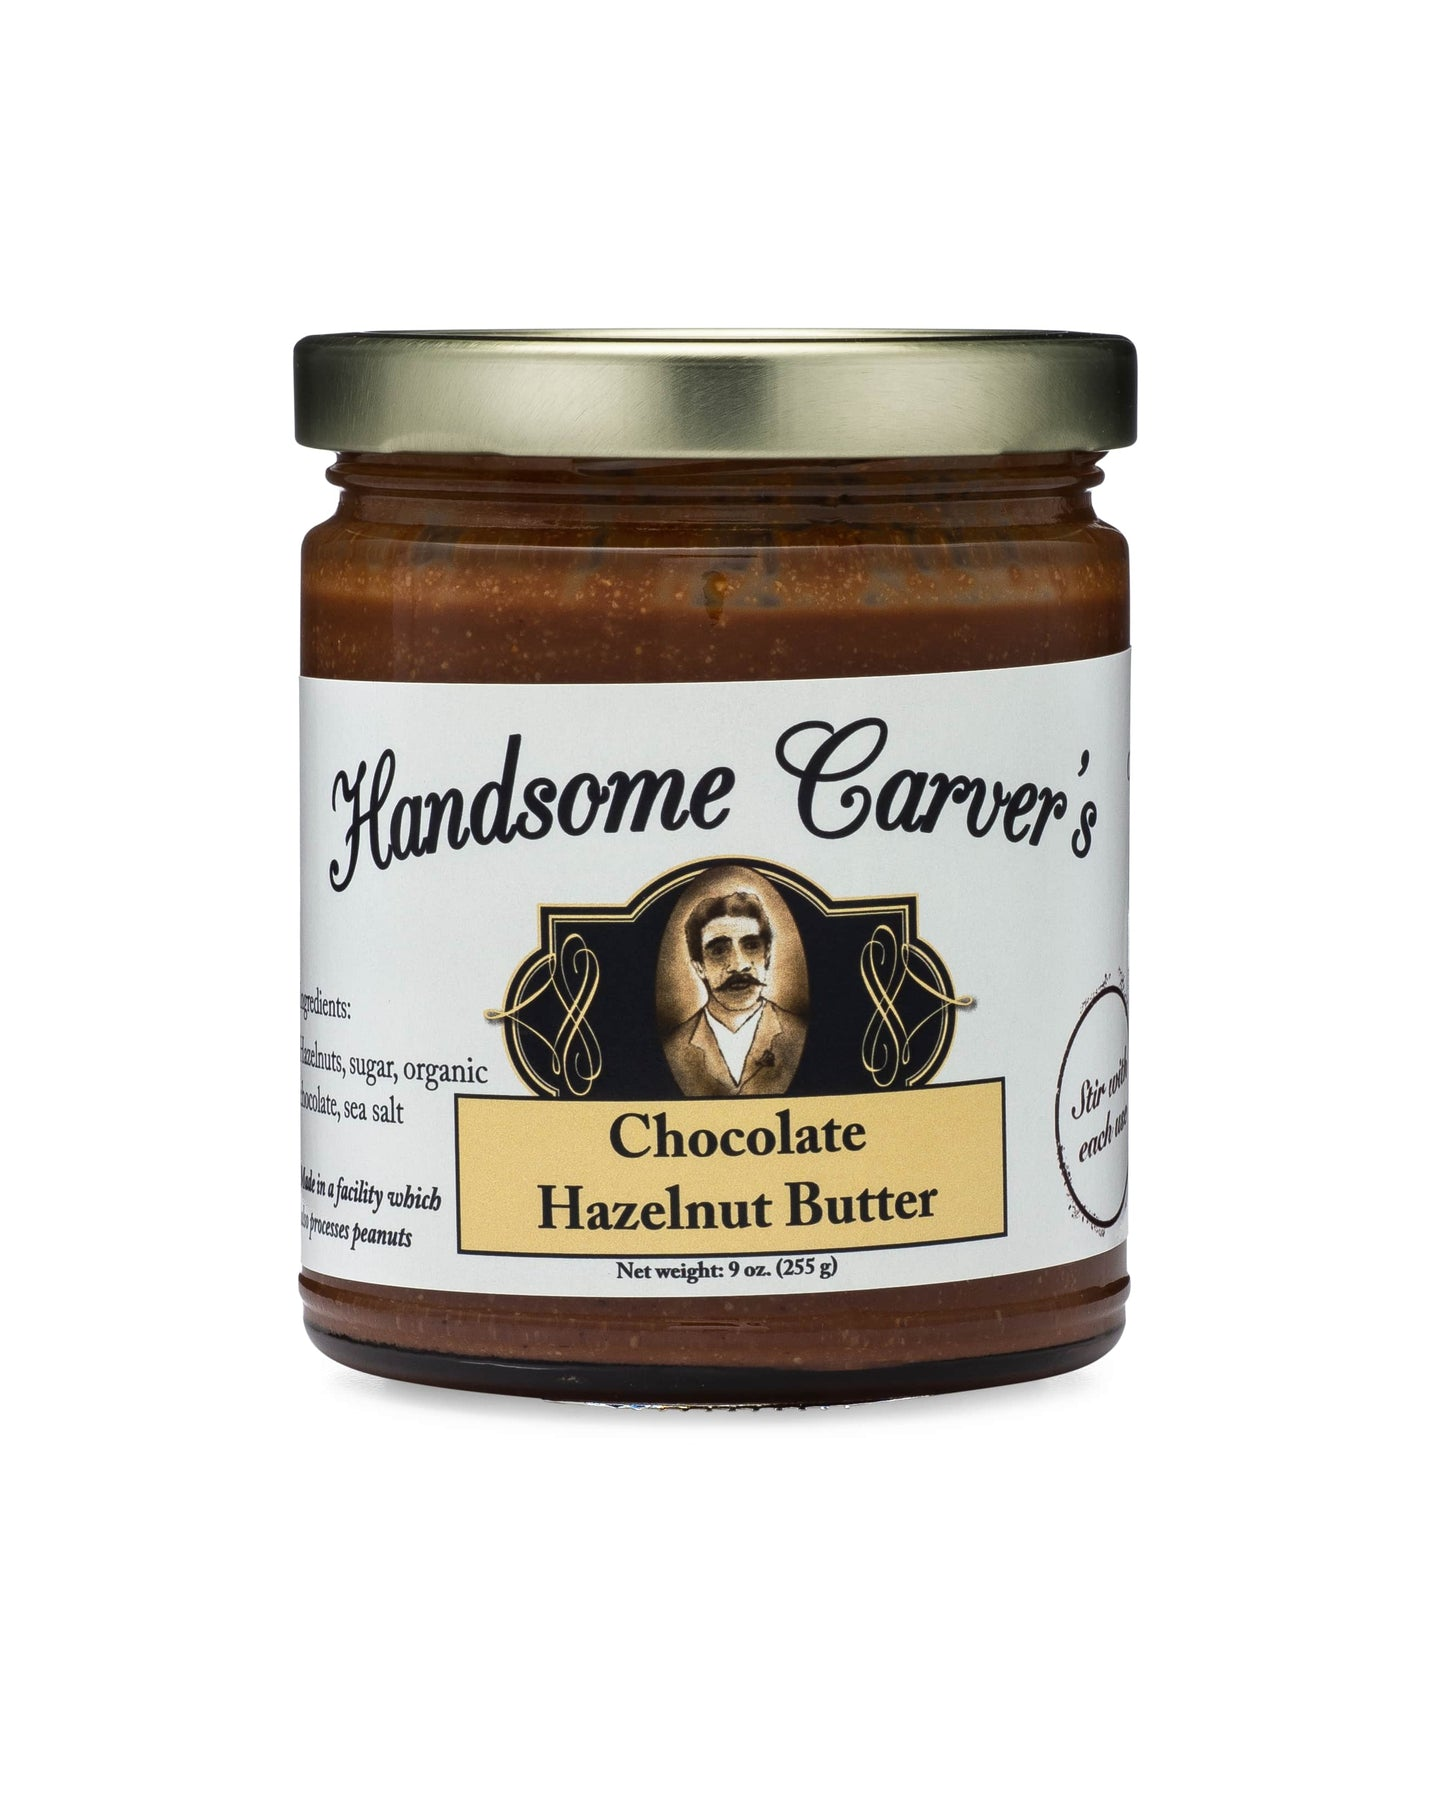 Handsome Carver's Nut Butters: Chocolate Hazelnut Butter